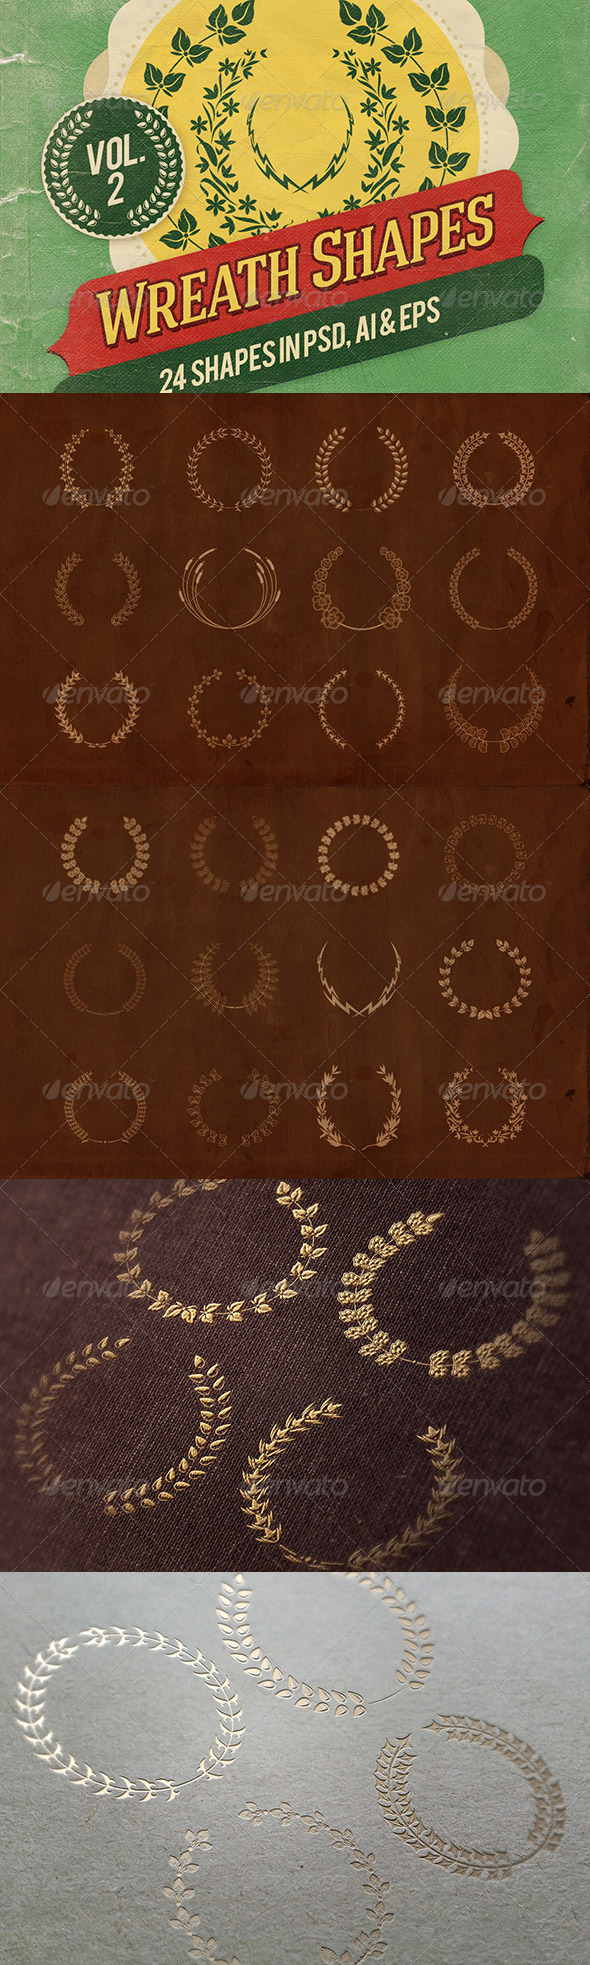 GraphicRiver Wreath Shapes Vol.2 6896534